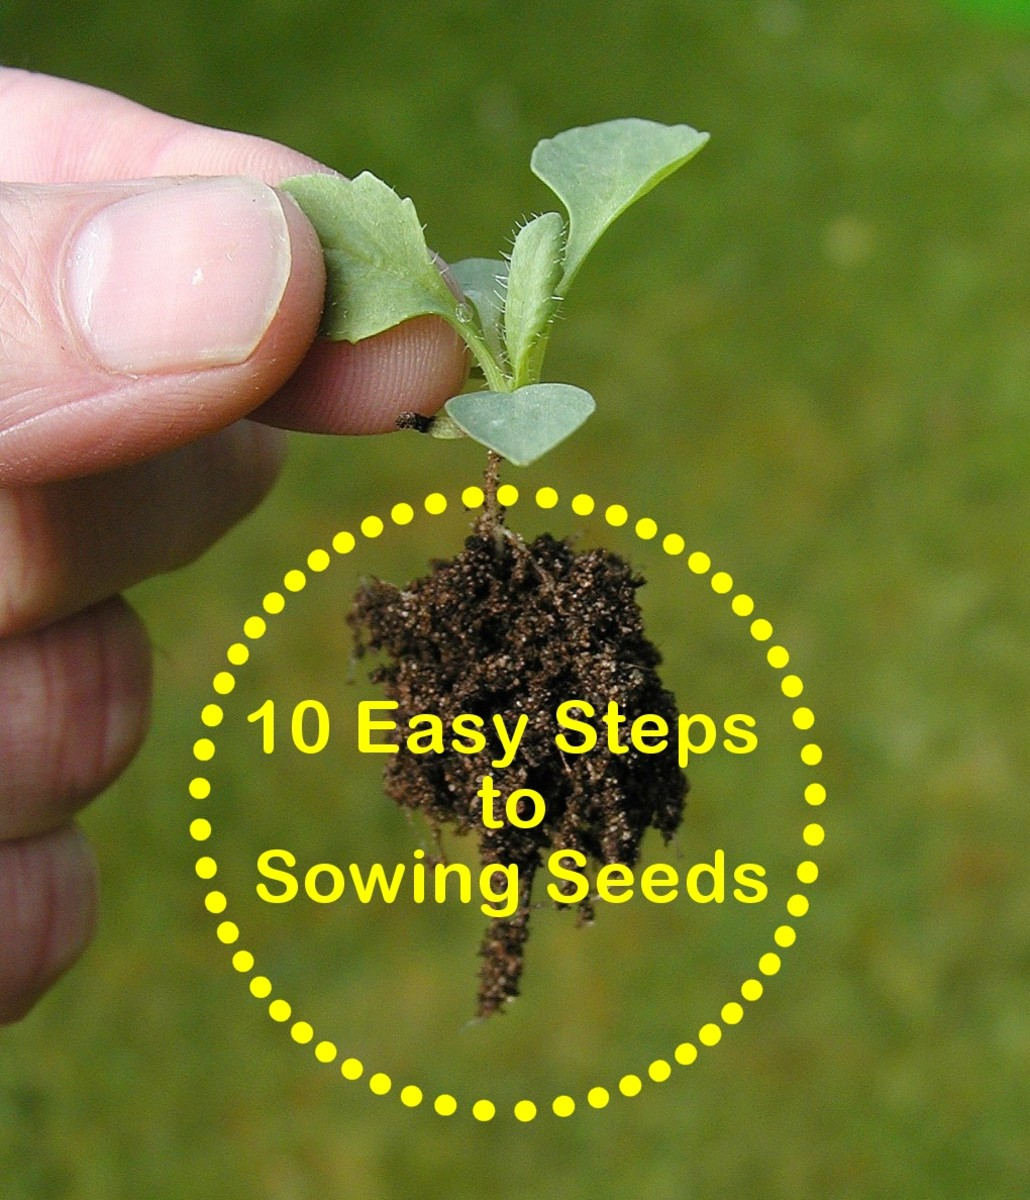 10 Easy Steps to Sowing Seeds - Gardening For Beginners